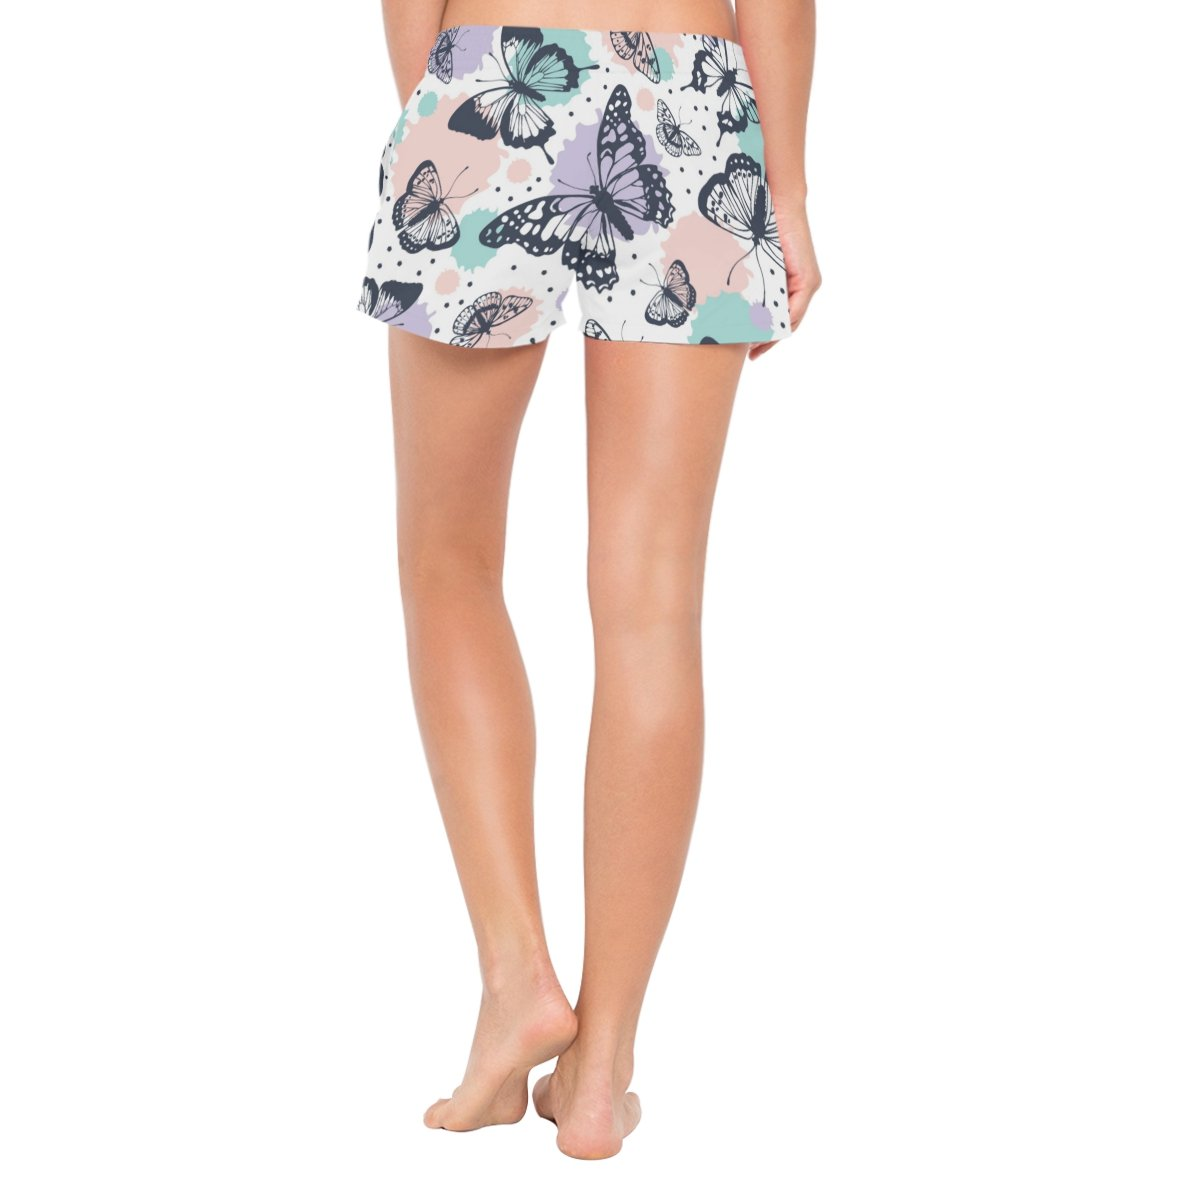 Cooper girl ALAZA Watercolor Butterfly Womens Shorts Beach Summer Drawstring Casual Shorts